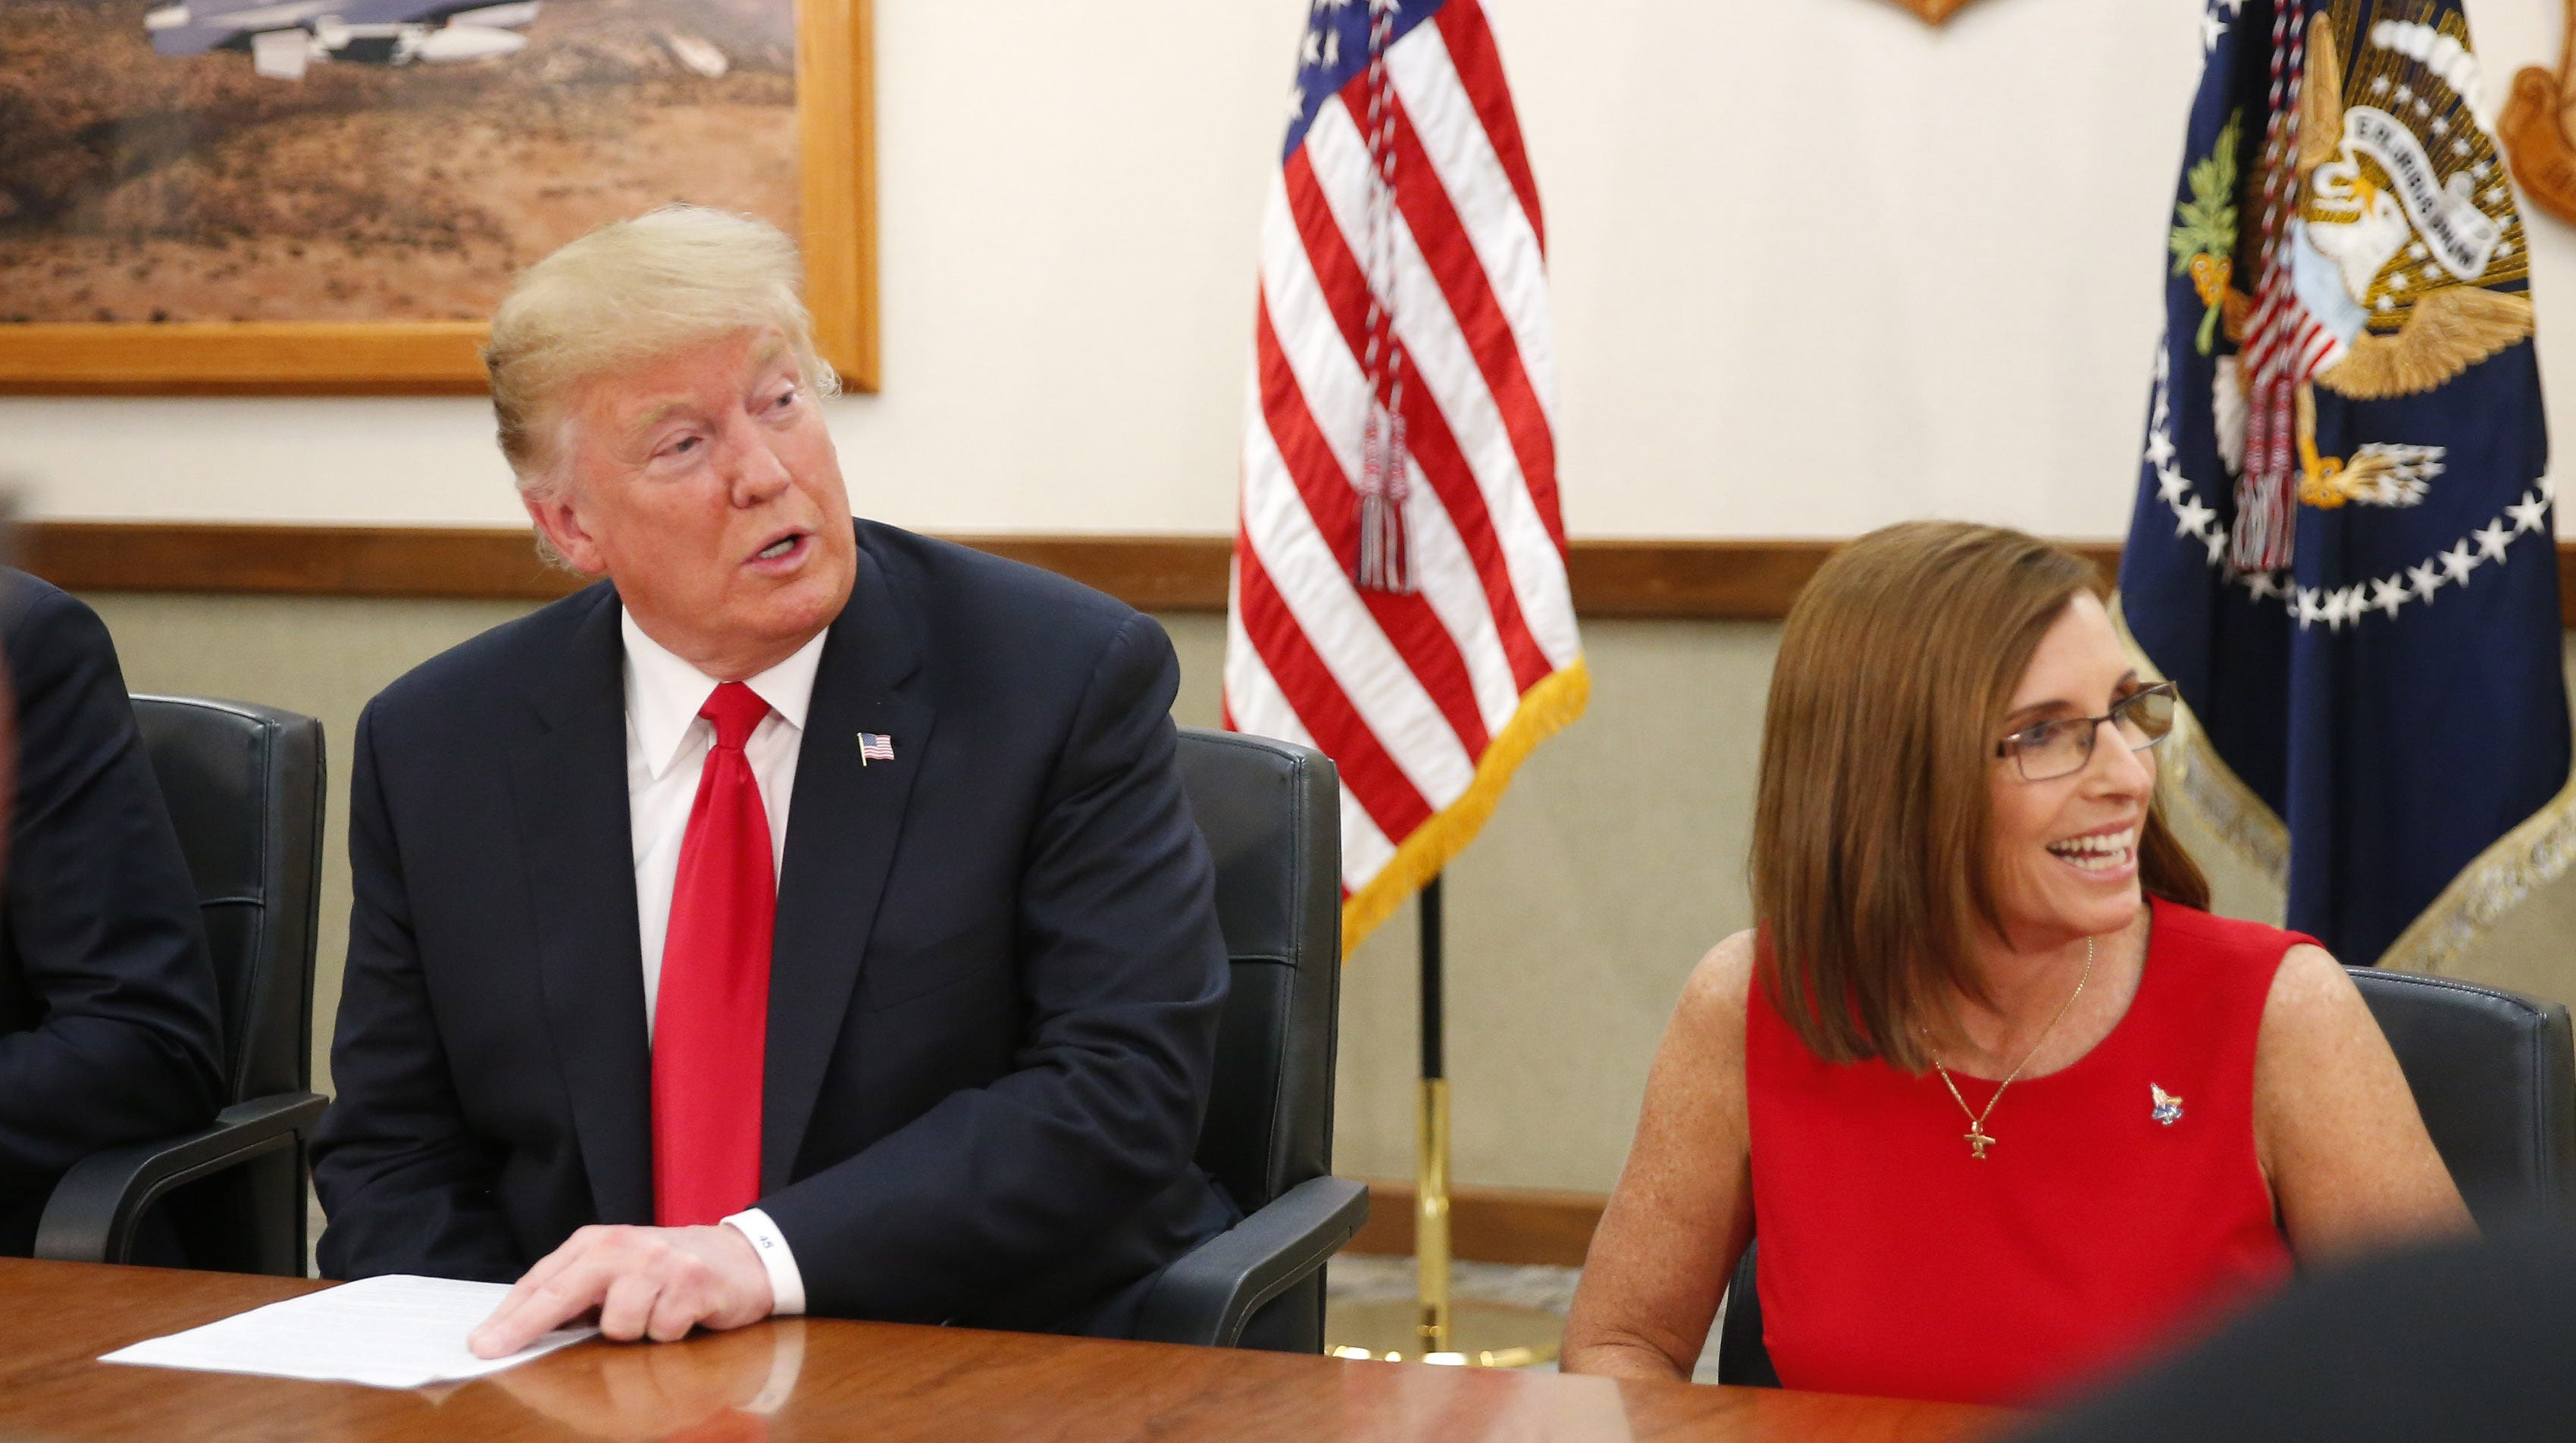 Trump visits Luke Air Force Base and talks military investment, immigration and McSally